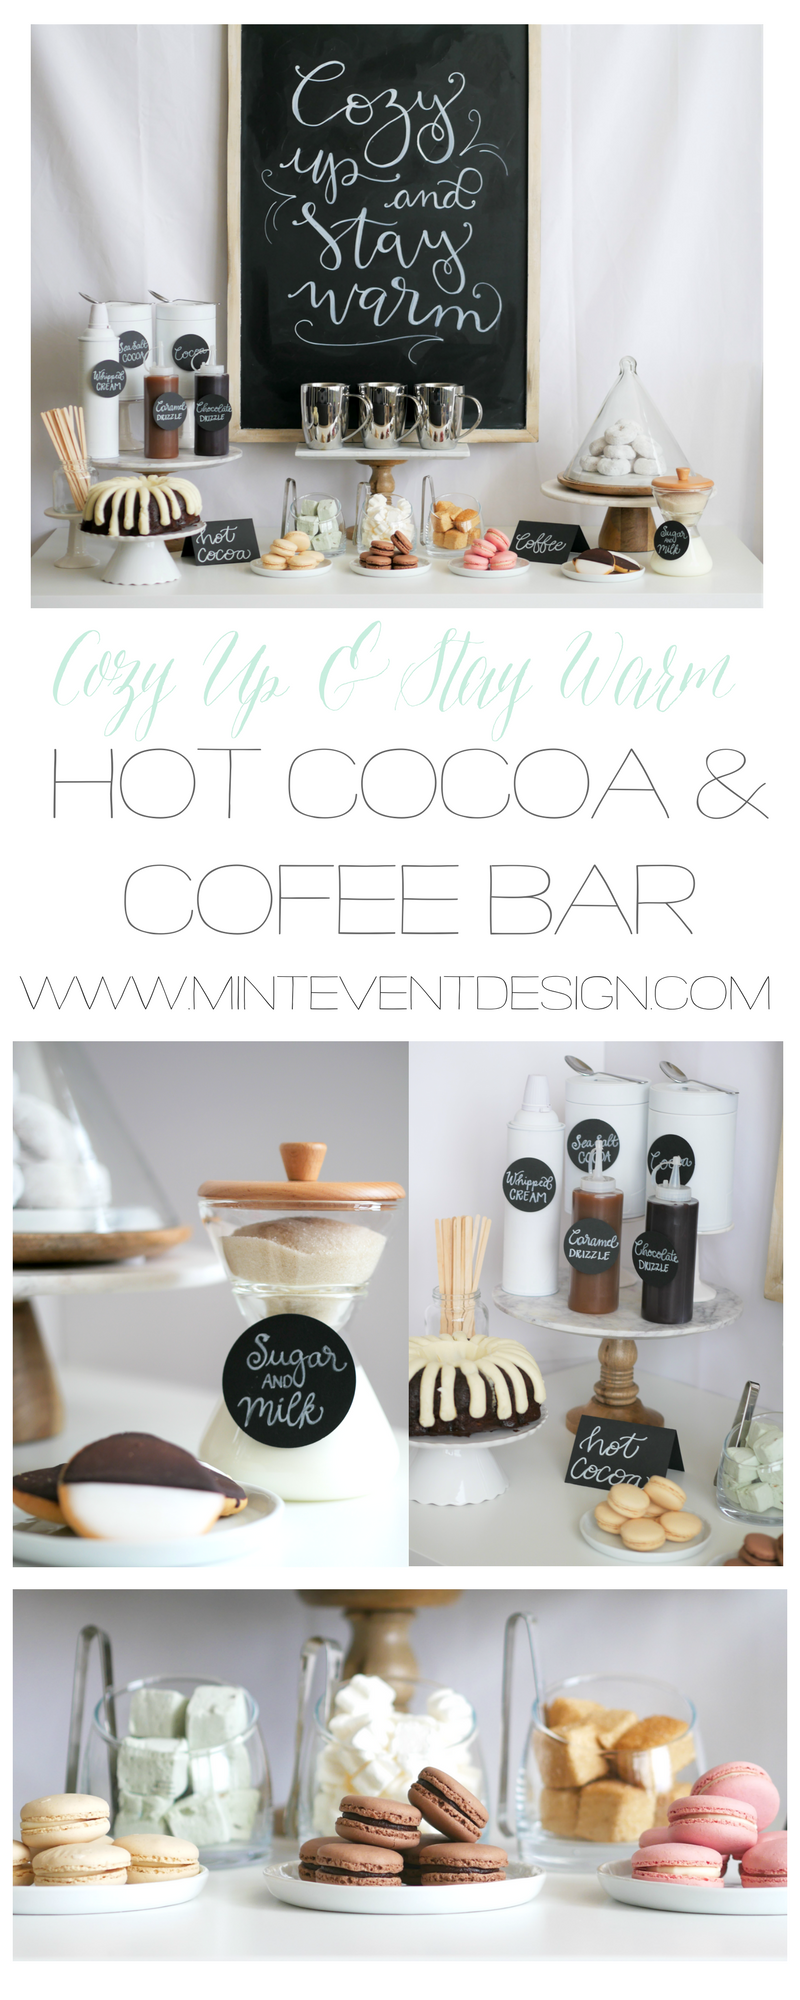 Cozy Up and Stay Warm | Creative party ideas, Mermaid parties and ...